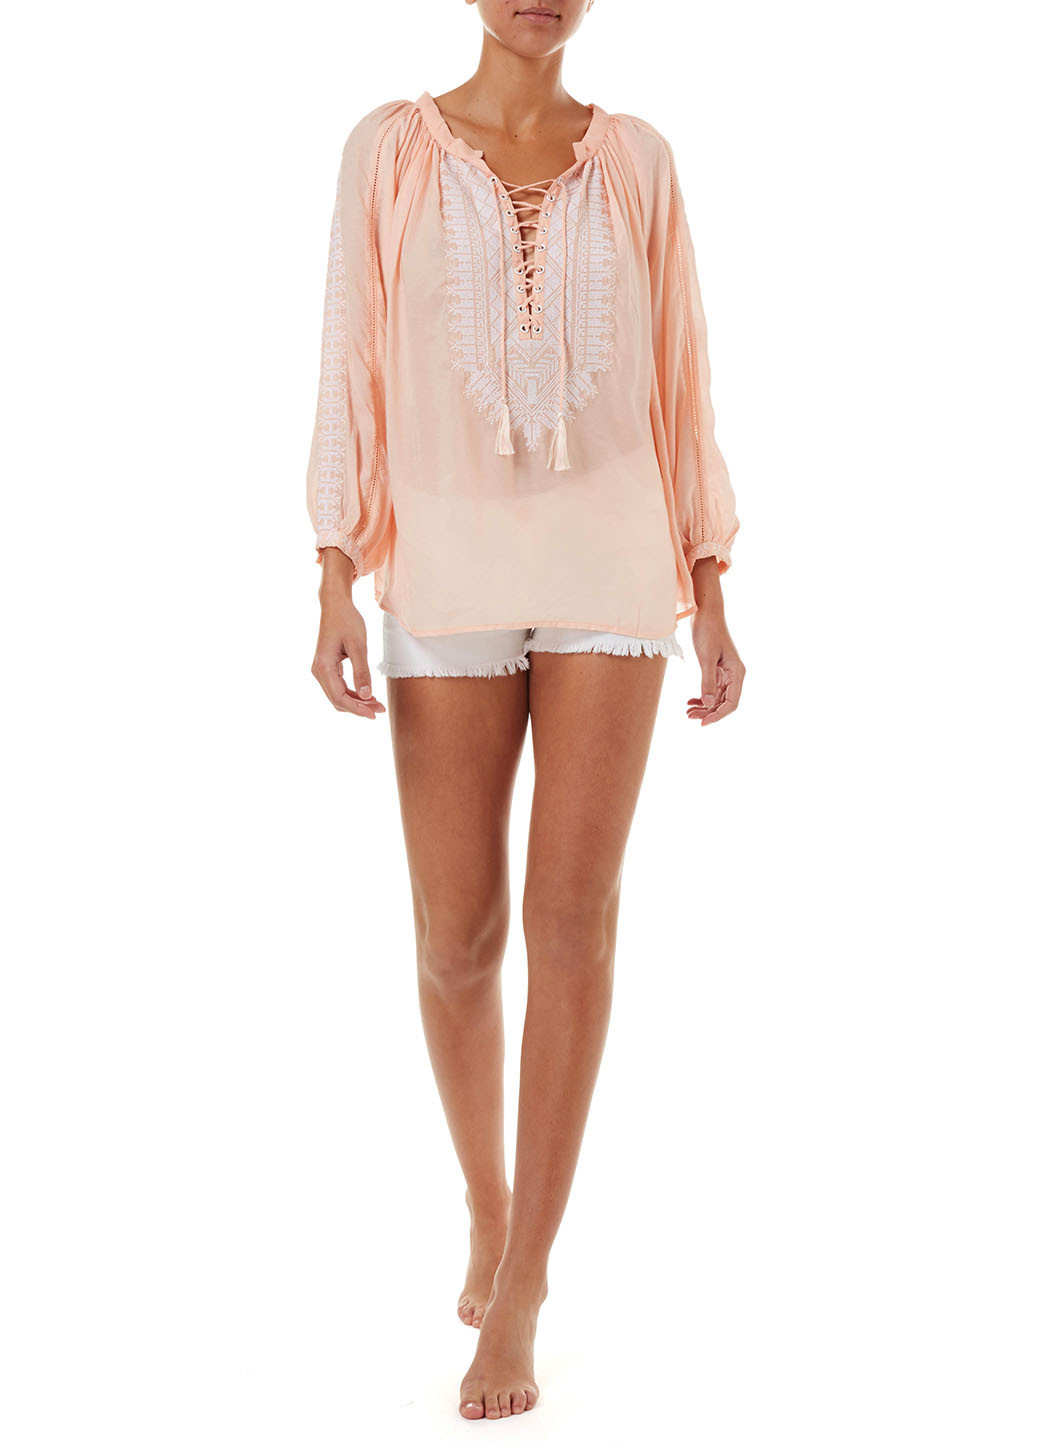 simona-peach-white-laceup-embroidered-blouse-2019-f